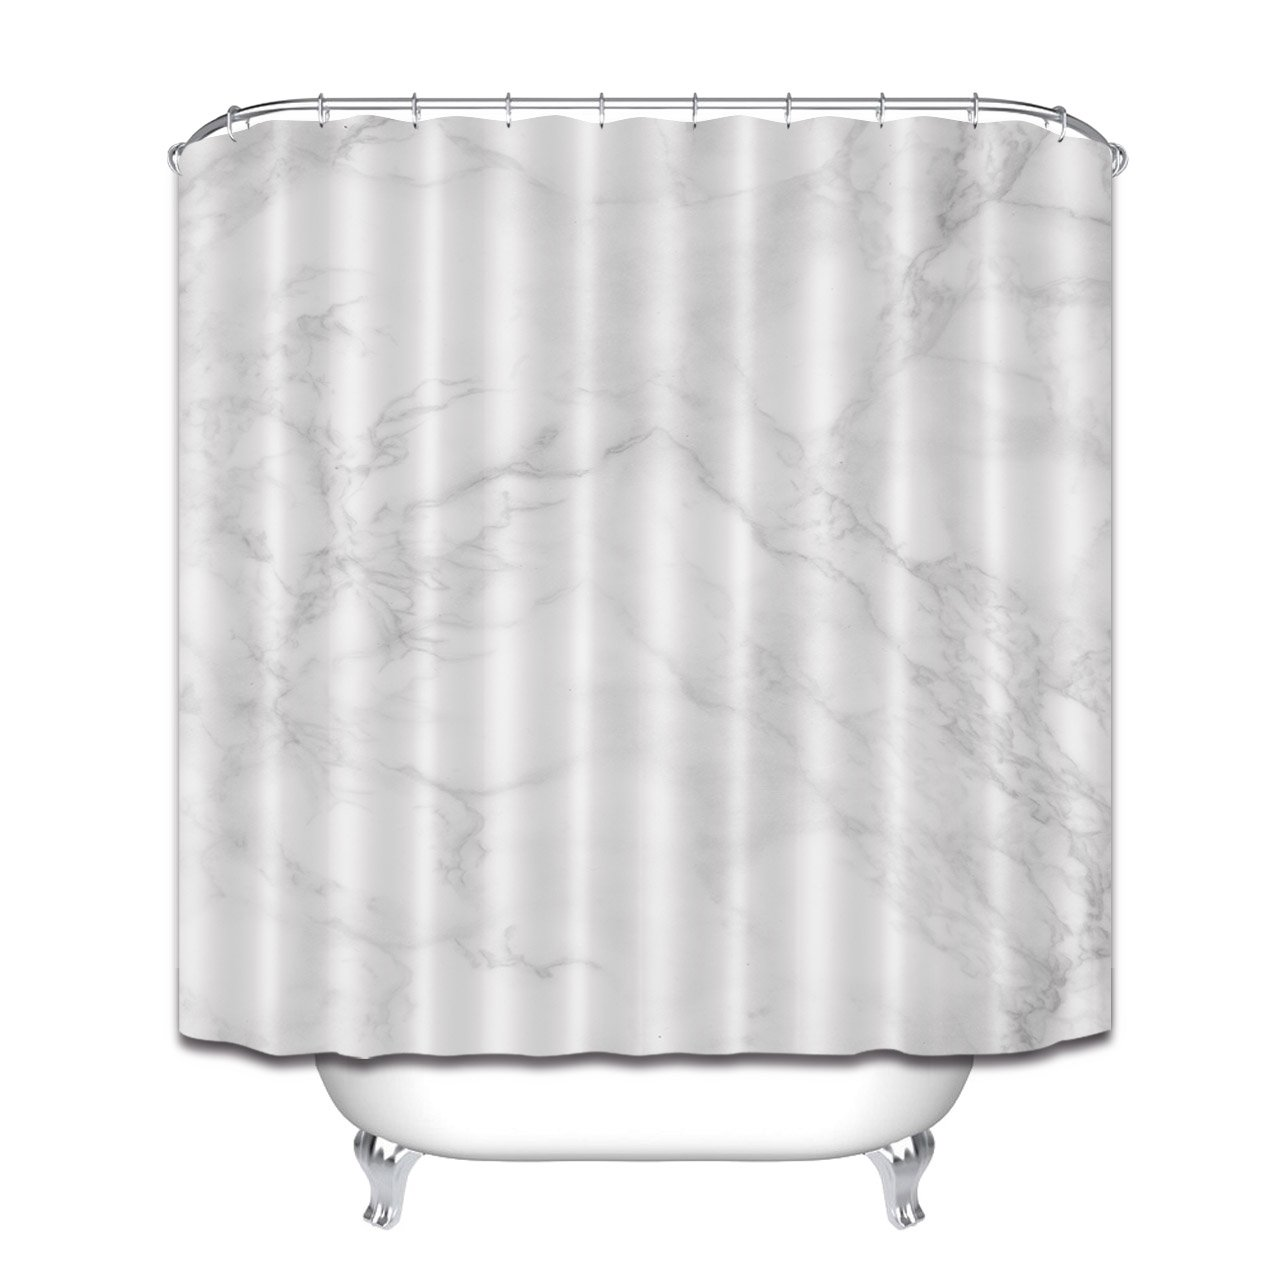 LB White Marble Shower Curtain3D Printing Pattern Modern Bathroom Decor Waterproof Mildew Resistant Polyester Fabric Bath Curtain 72 X72 Inches